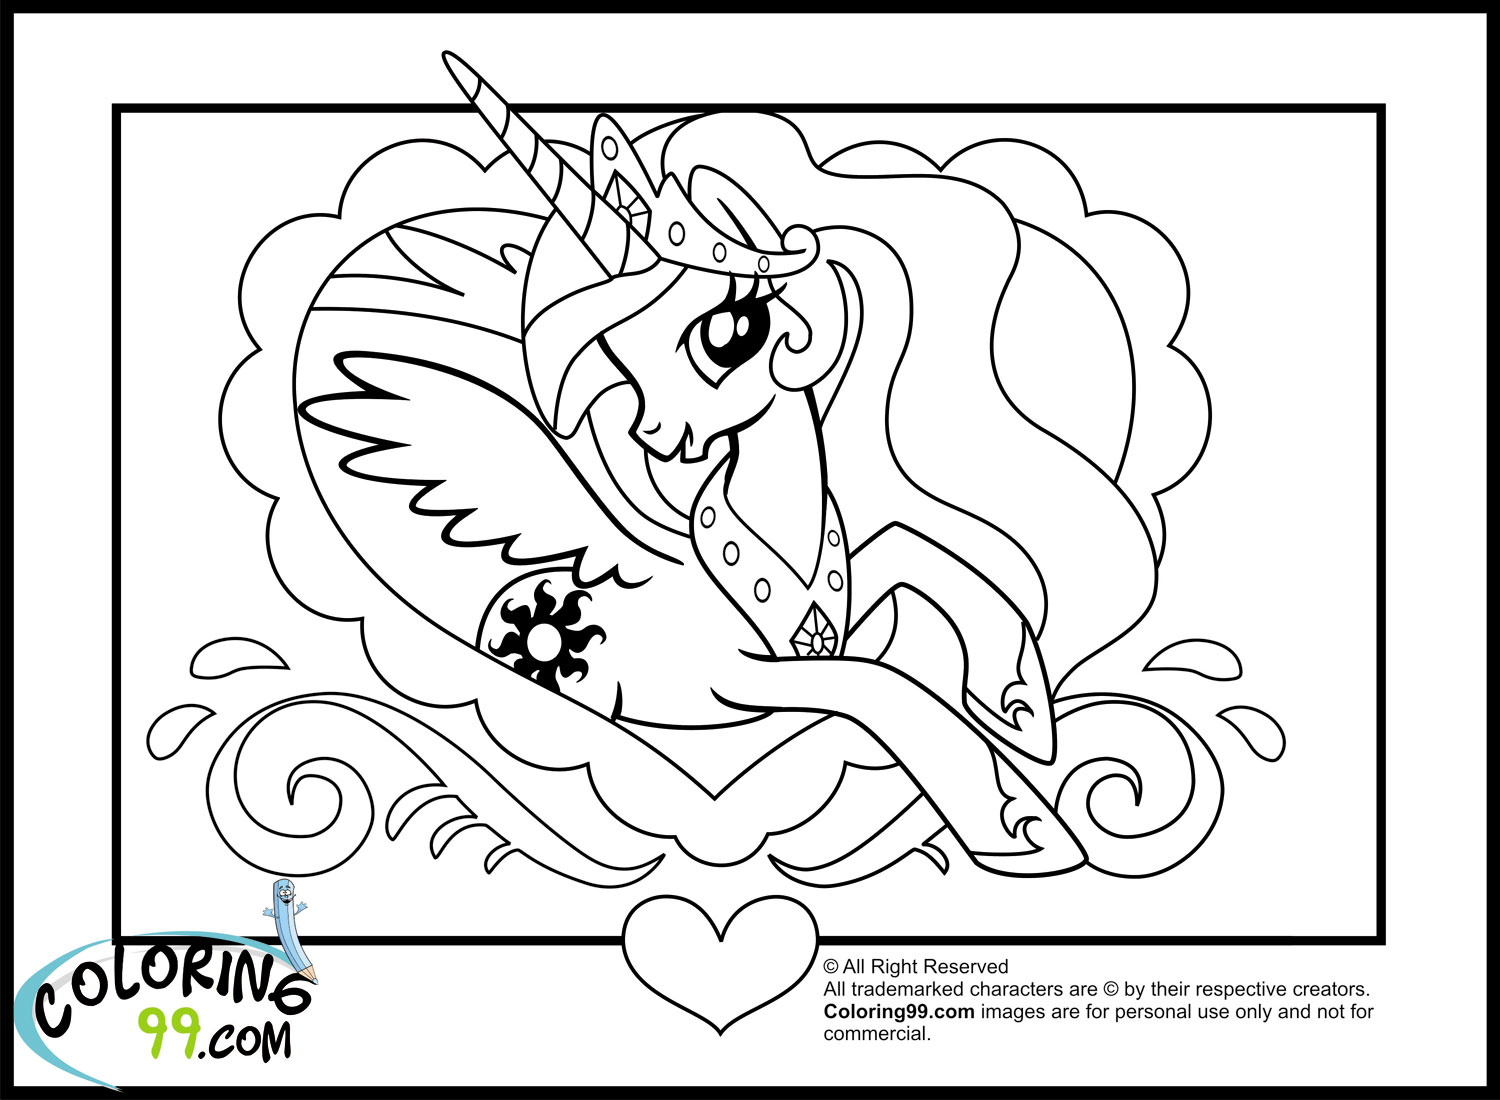 My Little Pony Princess Celestia Coloring Pages Team Colors My Pony Coloring Pages Princess Celestia In A Dress